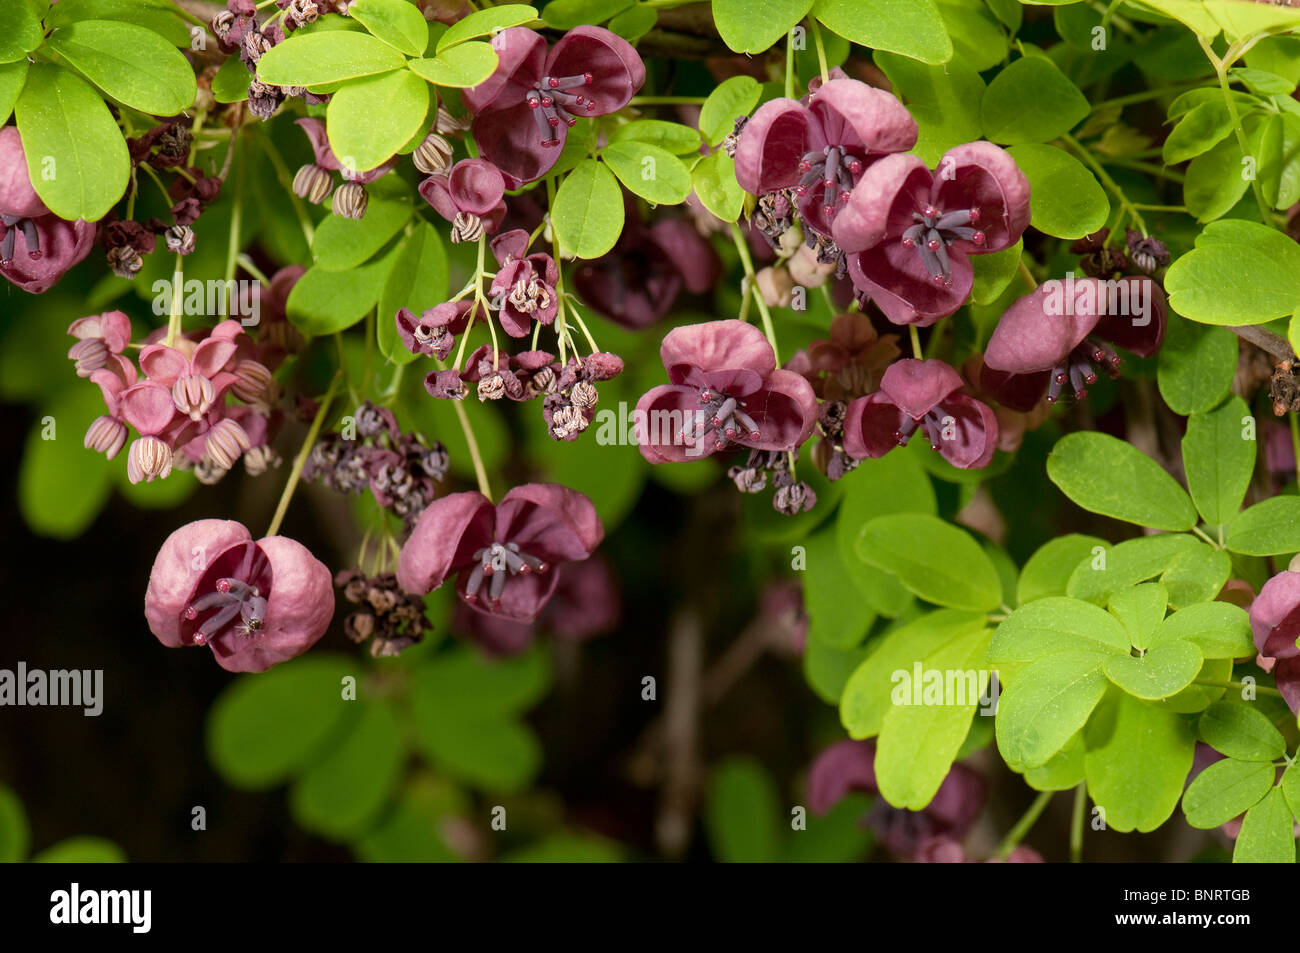 Akebia stock photos akebia stock images alamy chocolate vine five leaf akebia akebia quinata flowering stock image mightylinksfo